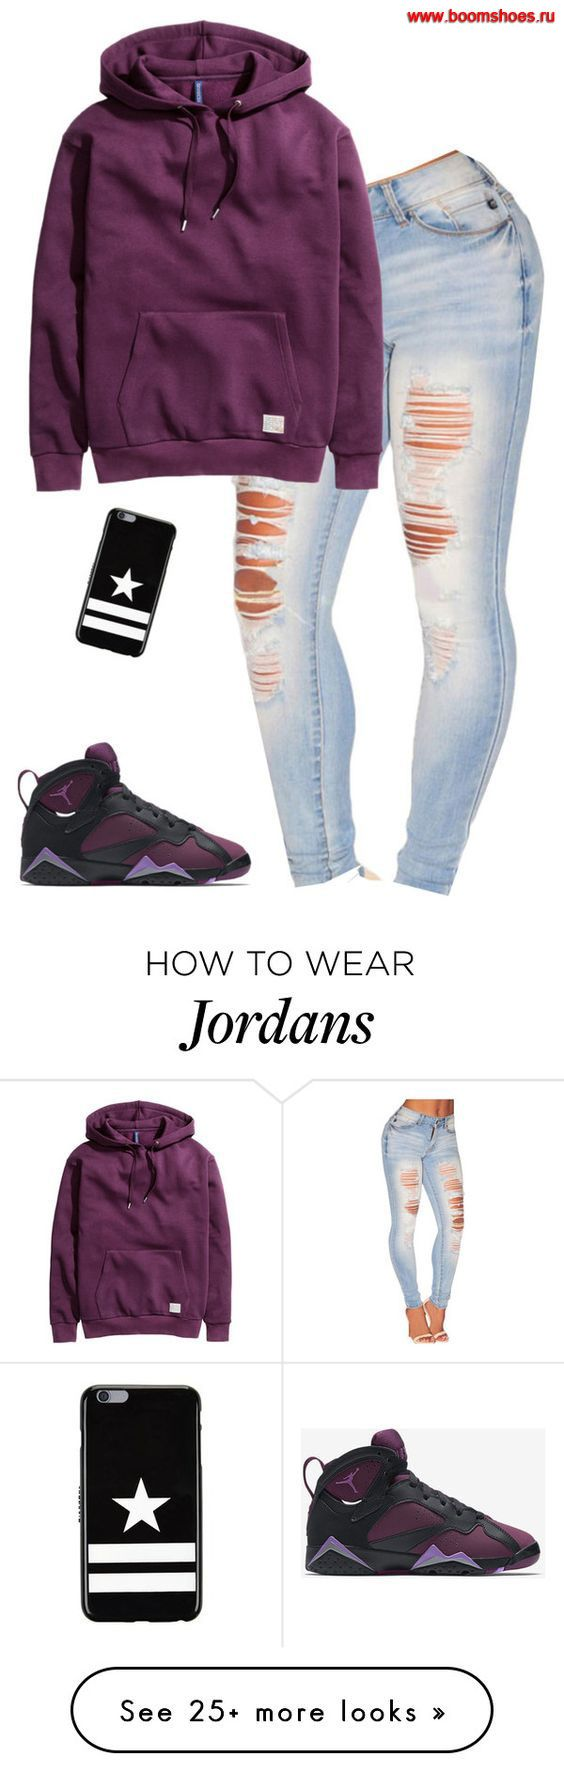 How to wear Jordan